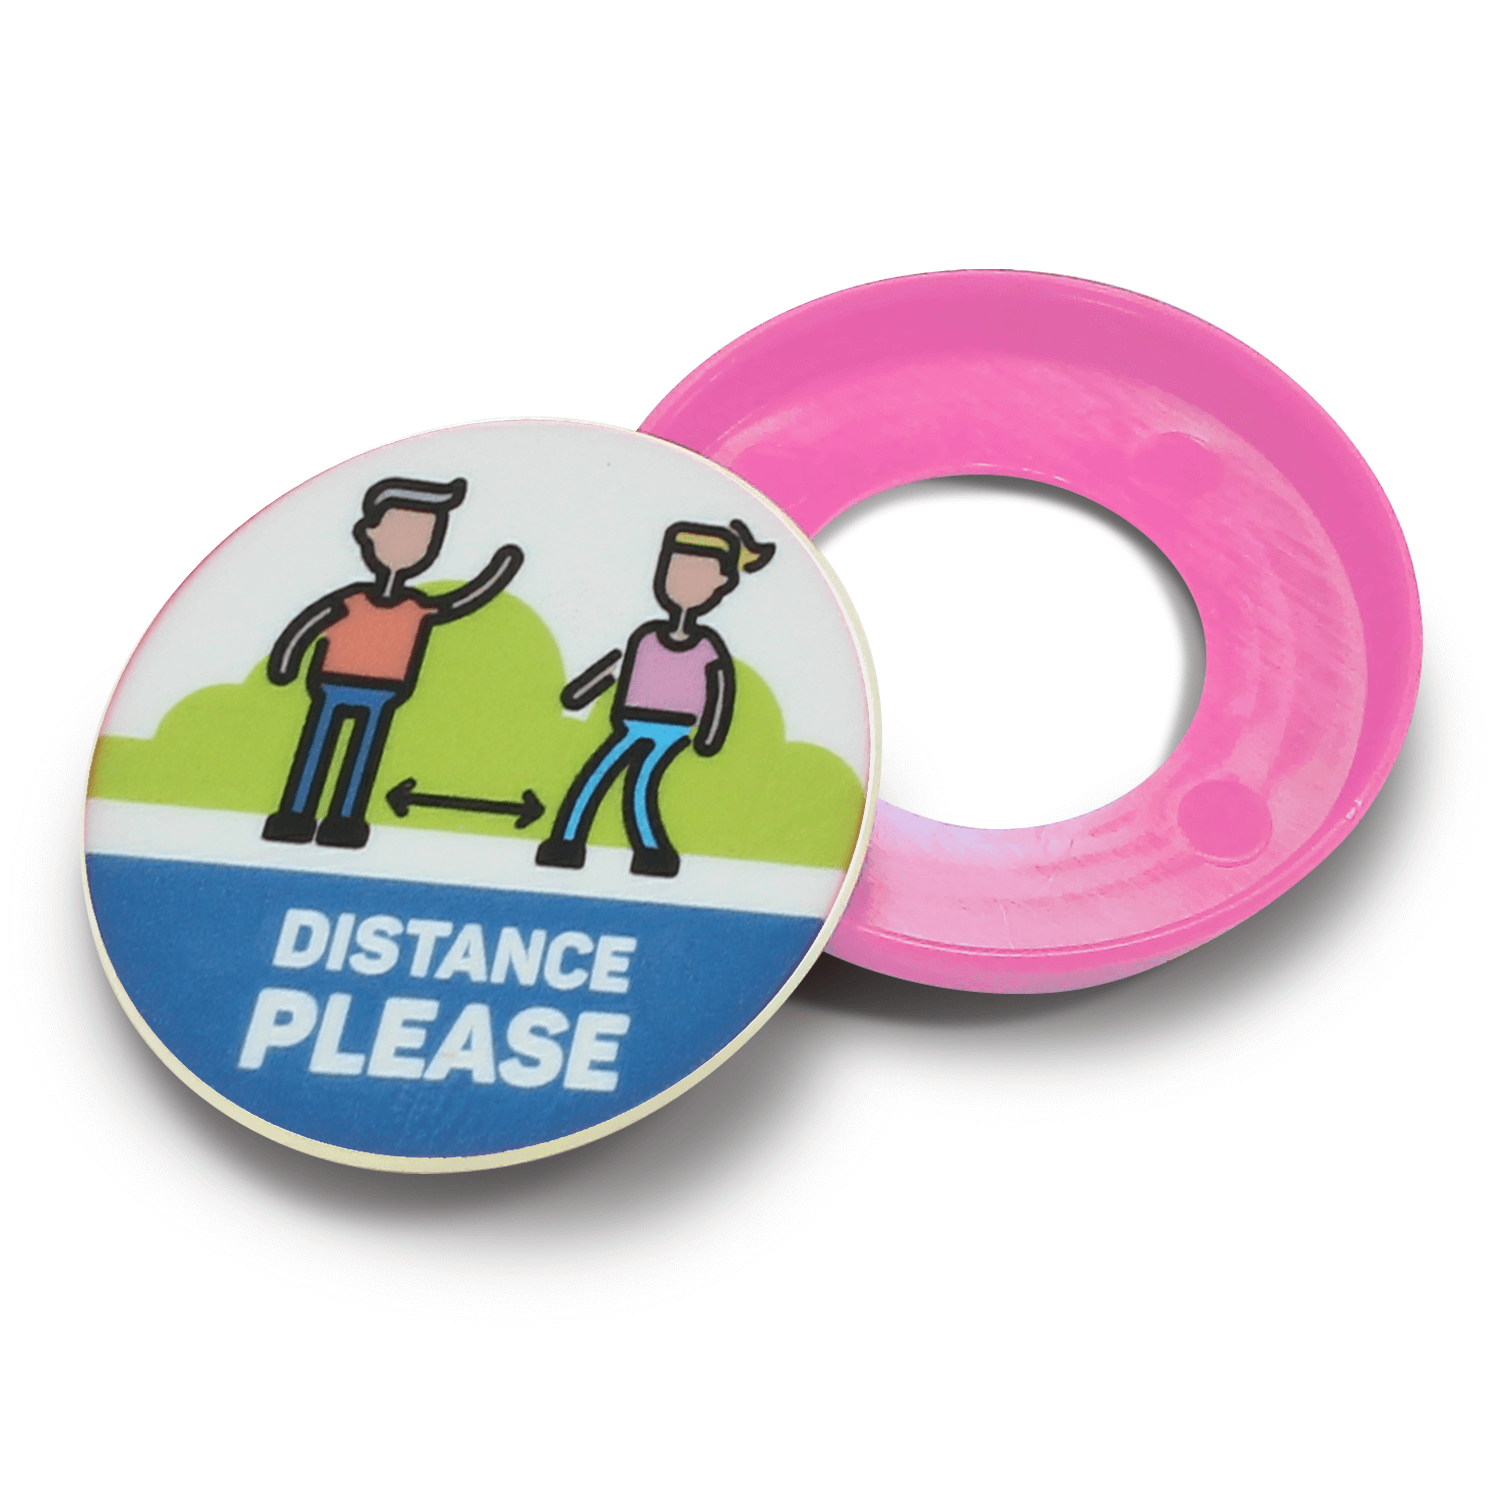 100% Recycled Plastic Social Distancing Kids Safety Pop Badge